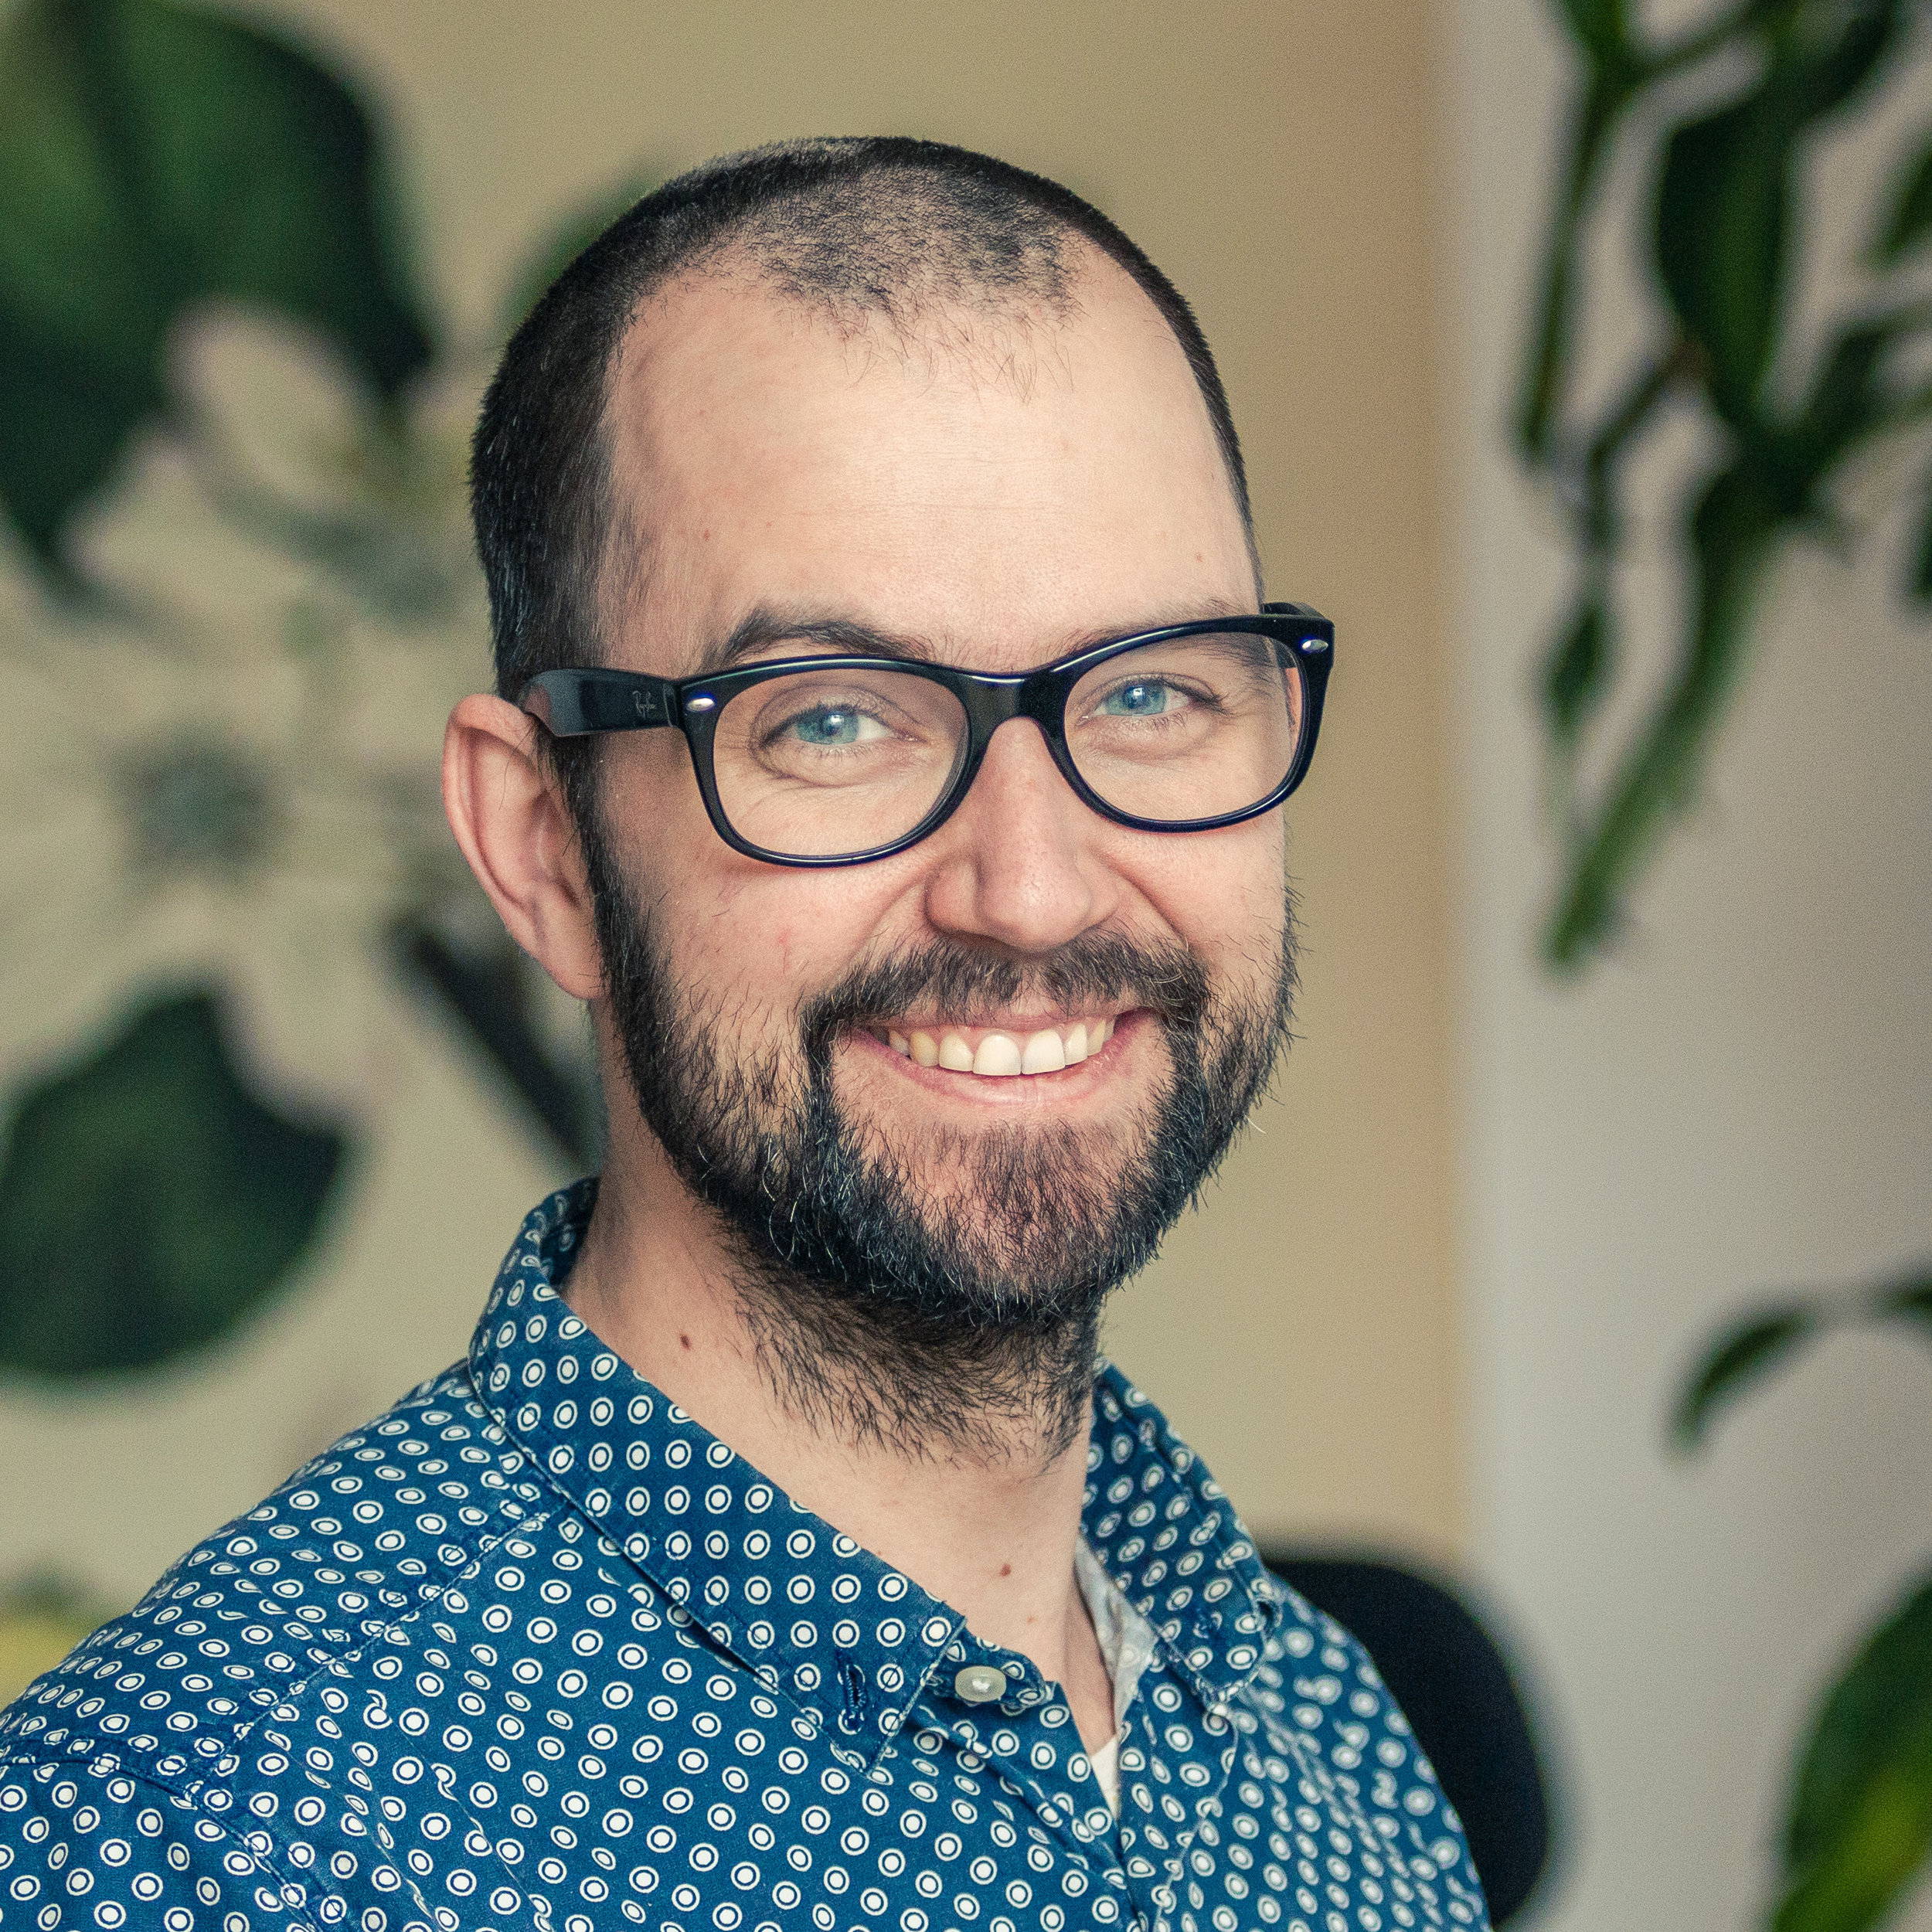 Alfred Beckman, UX Lead